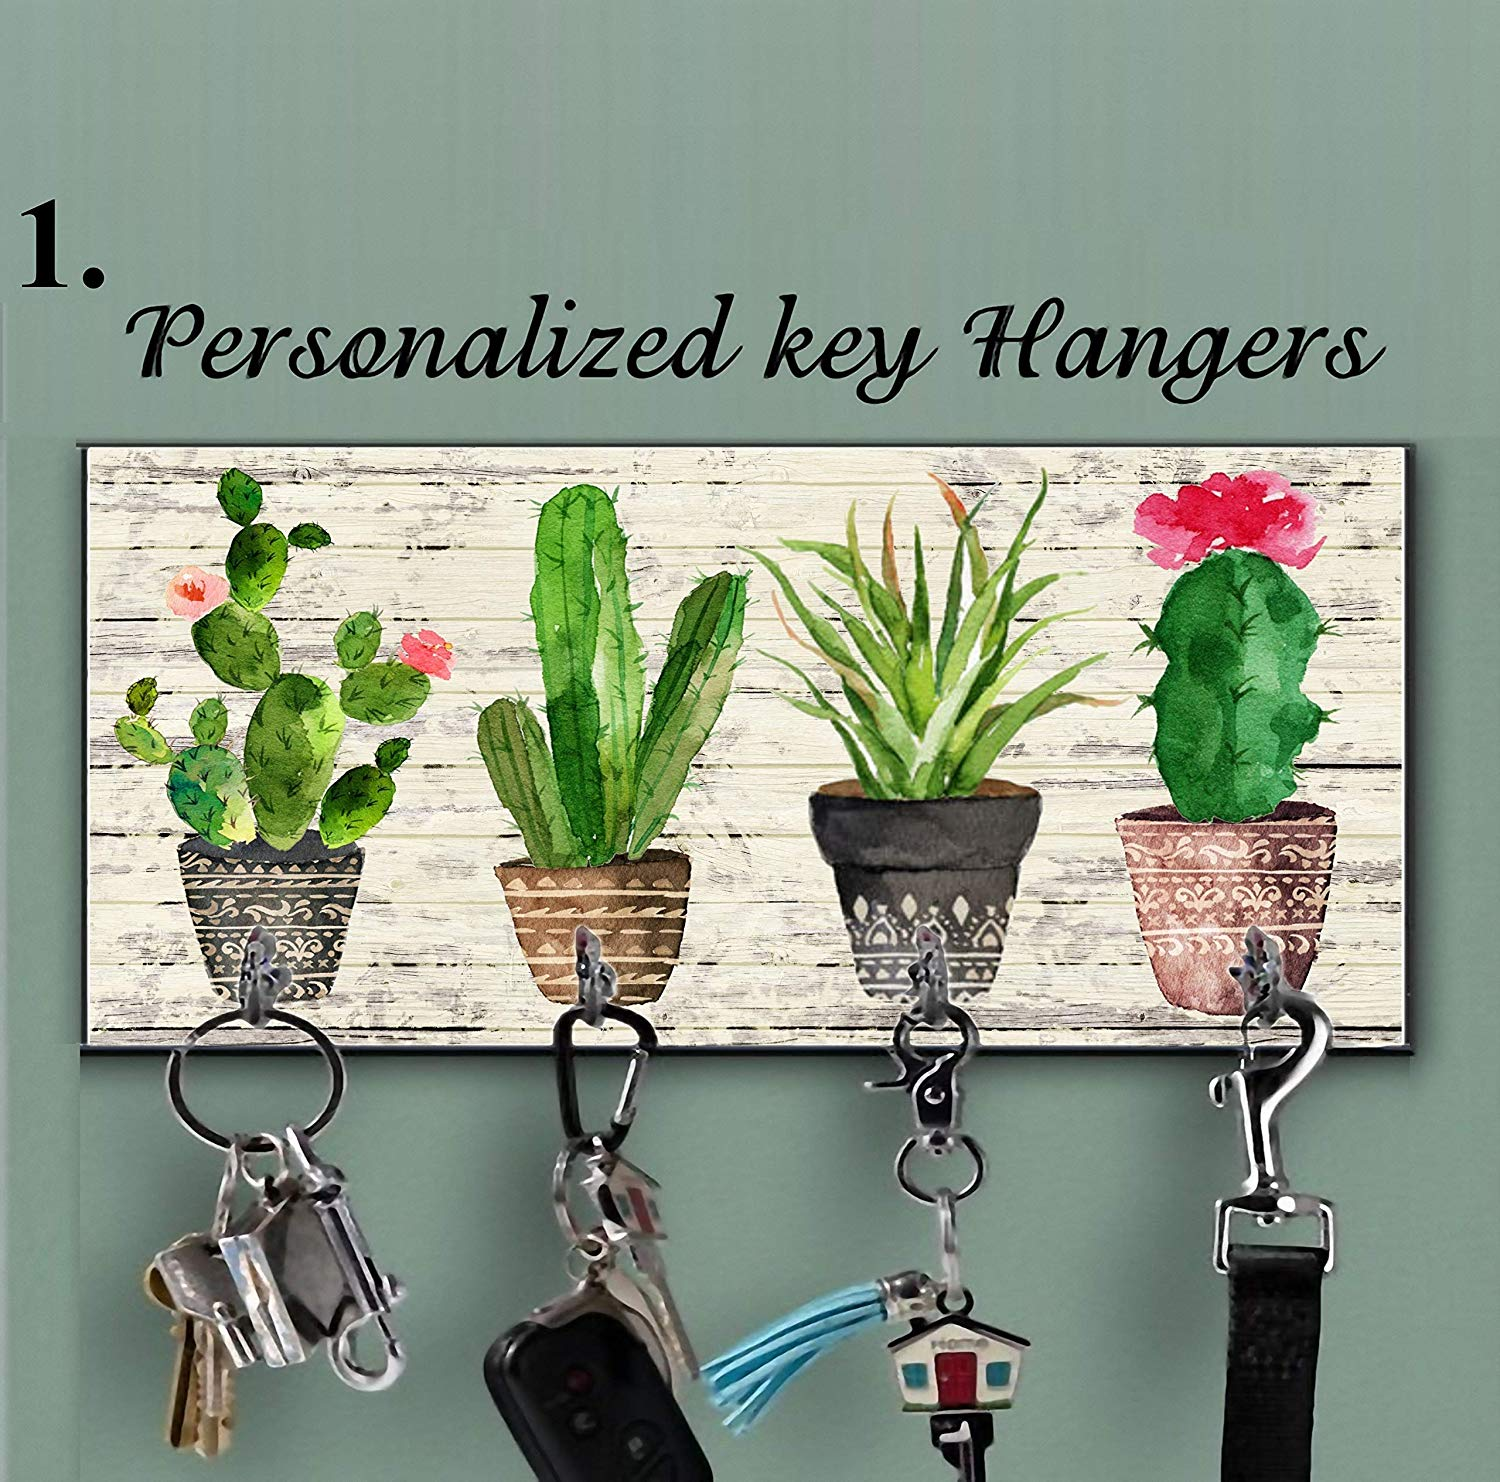 Wooden Cactus key holder for wall, Cactus wall decor, Tropical wall decor, Hook key, Organizer wall key rack, Cactus key storage,Wall Key Rack, Key Hangers, Personalized Gift, Cacti key hanger